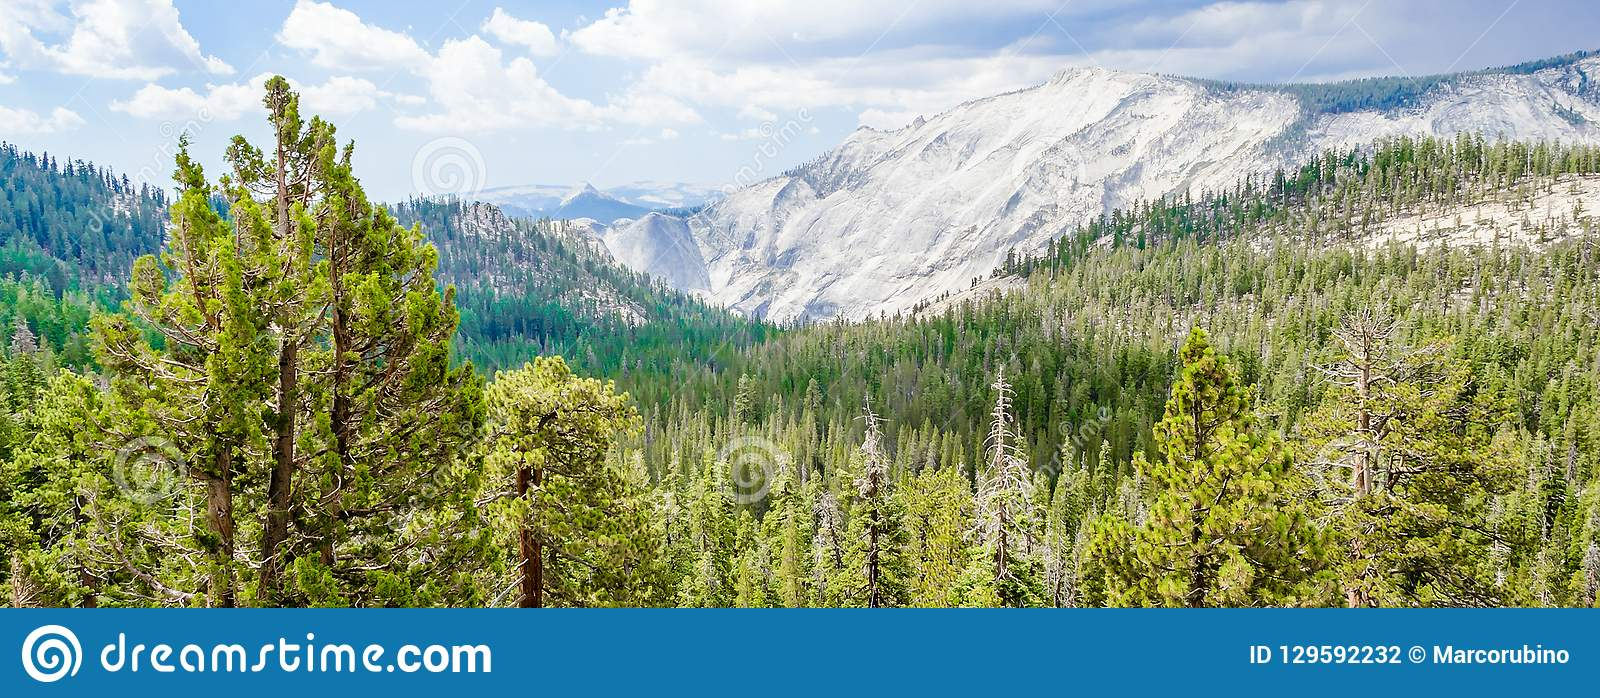 Beautiful green valley with forest in Yosemite National Park, US